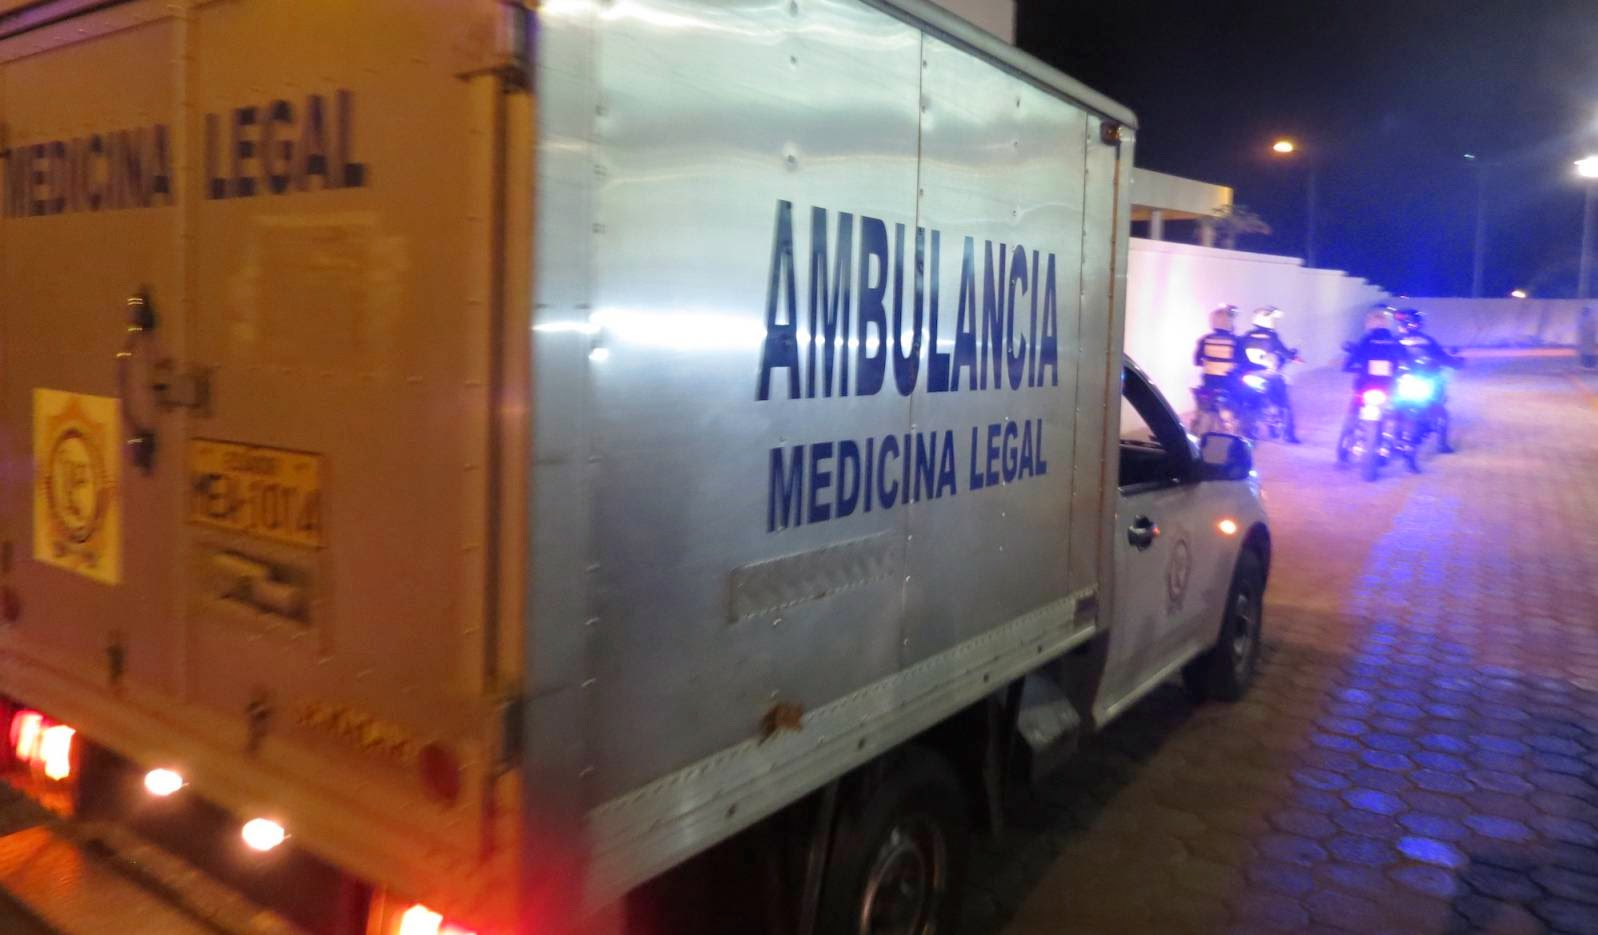 Ambulancia de la medicina legal